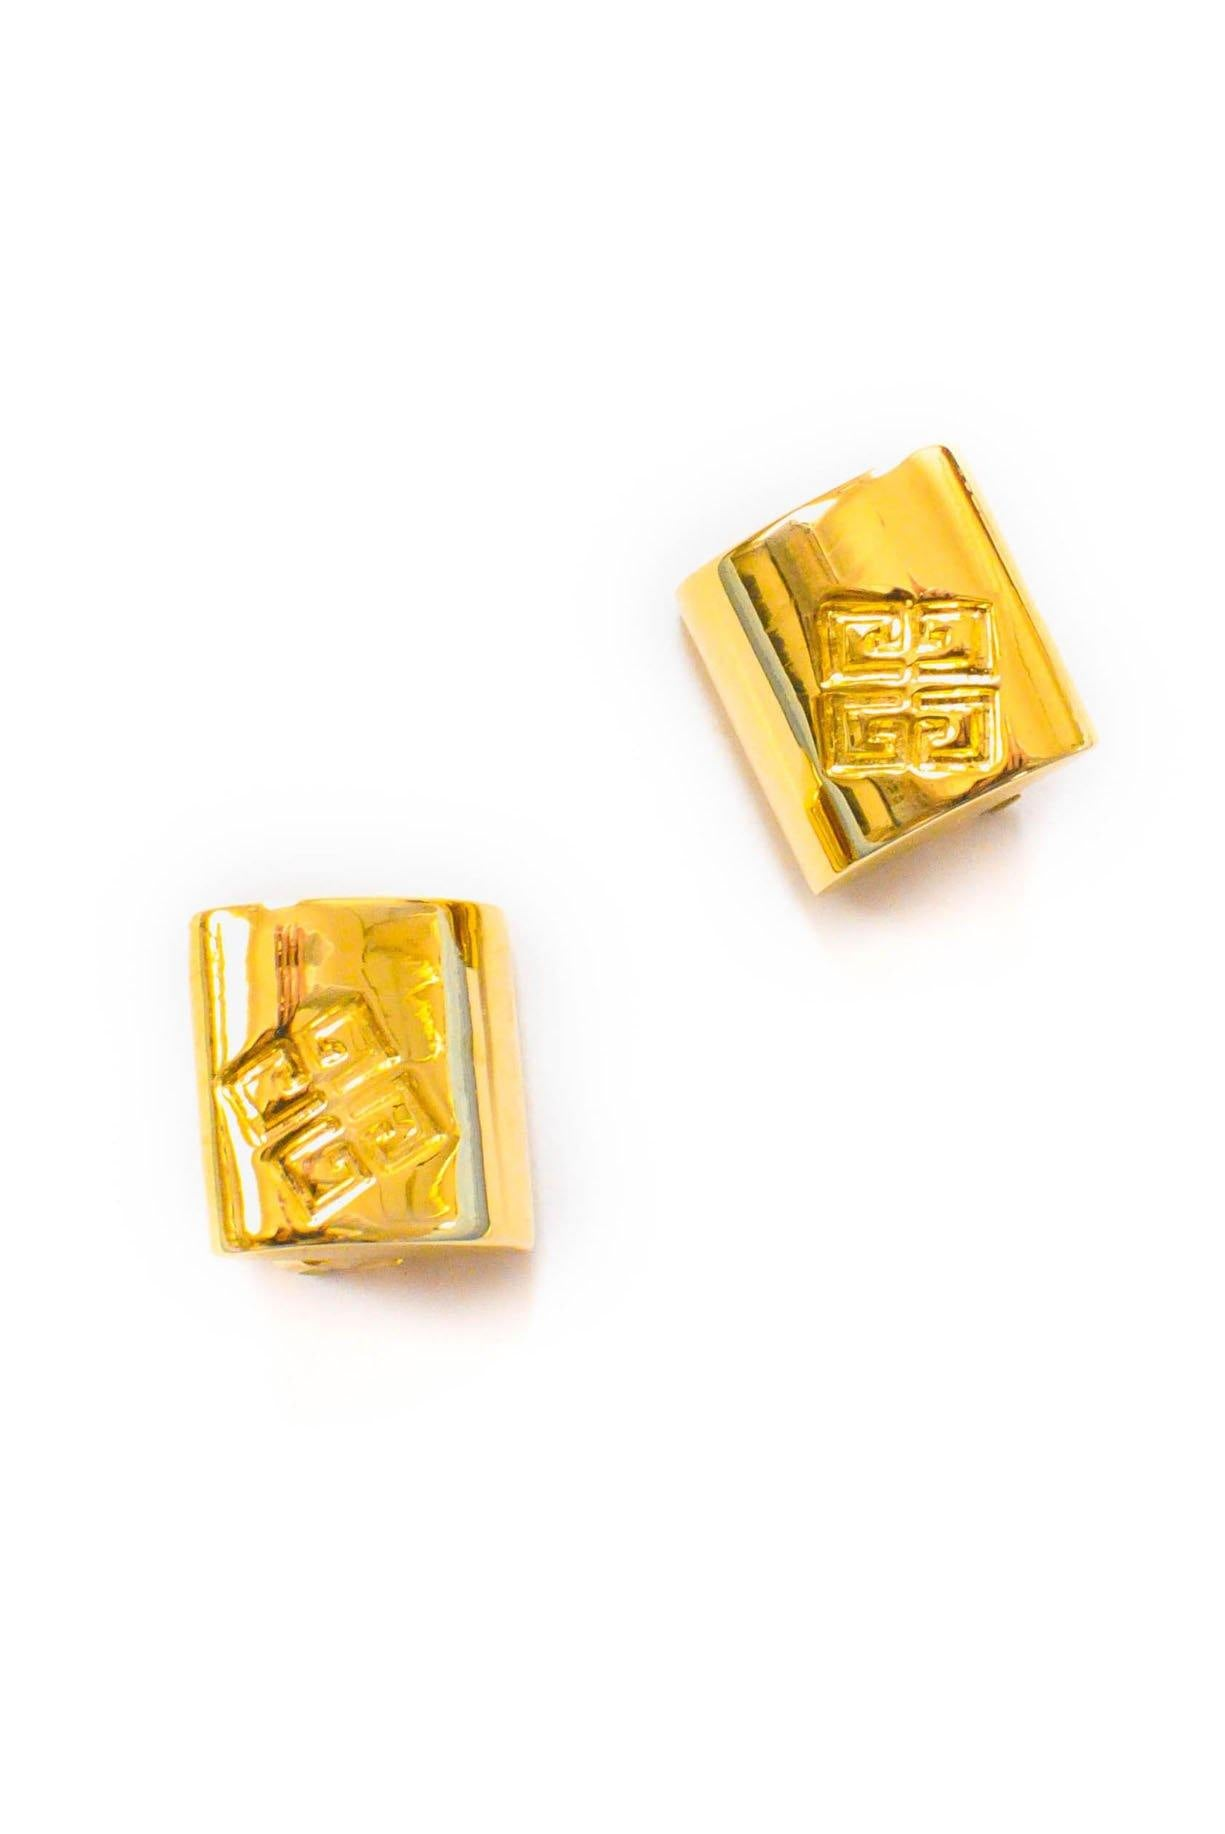 Vintage Givenchy Logo Clip-on Earrings from Sweet and Spark